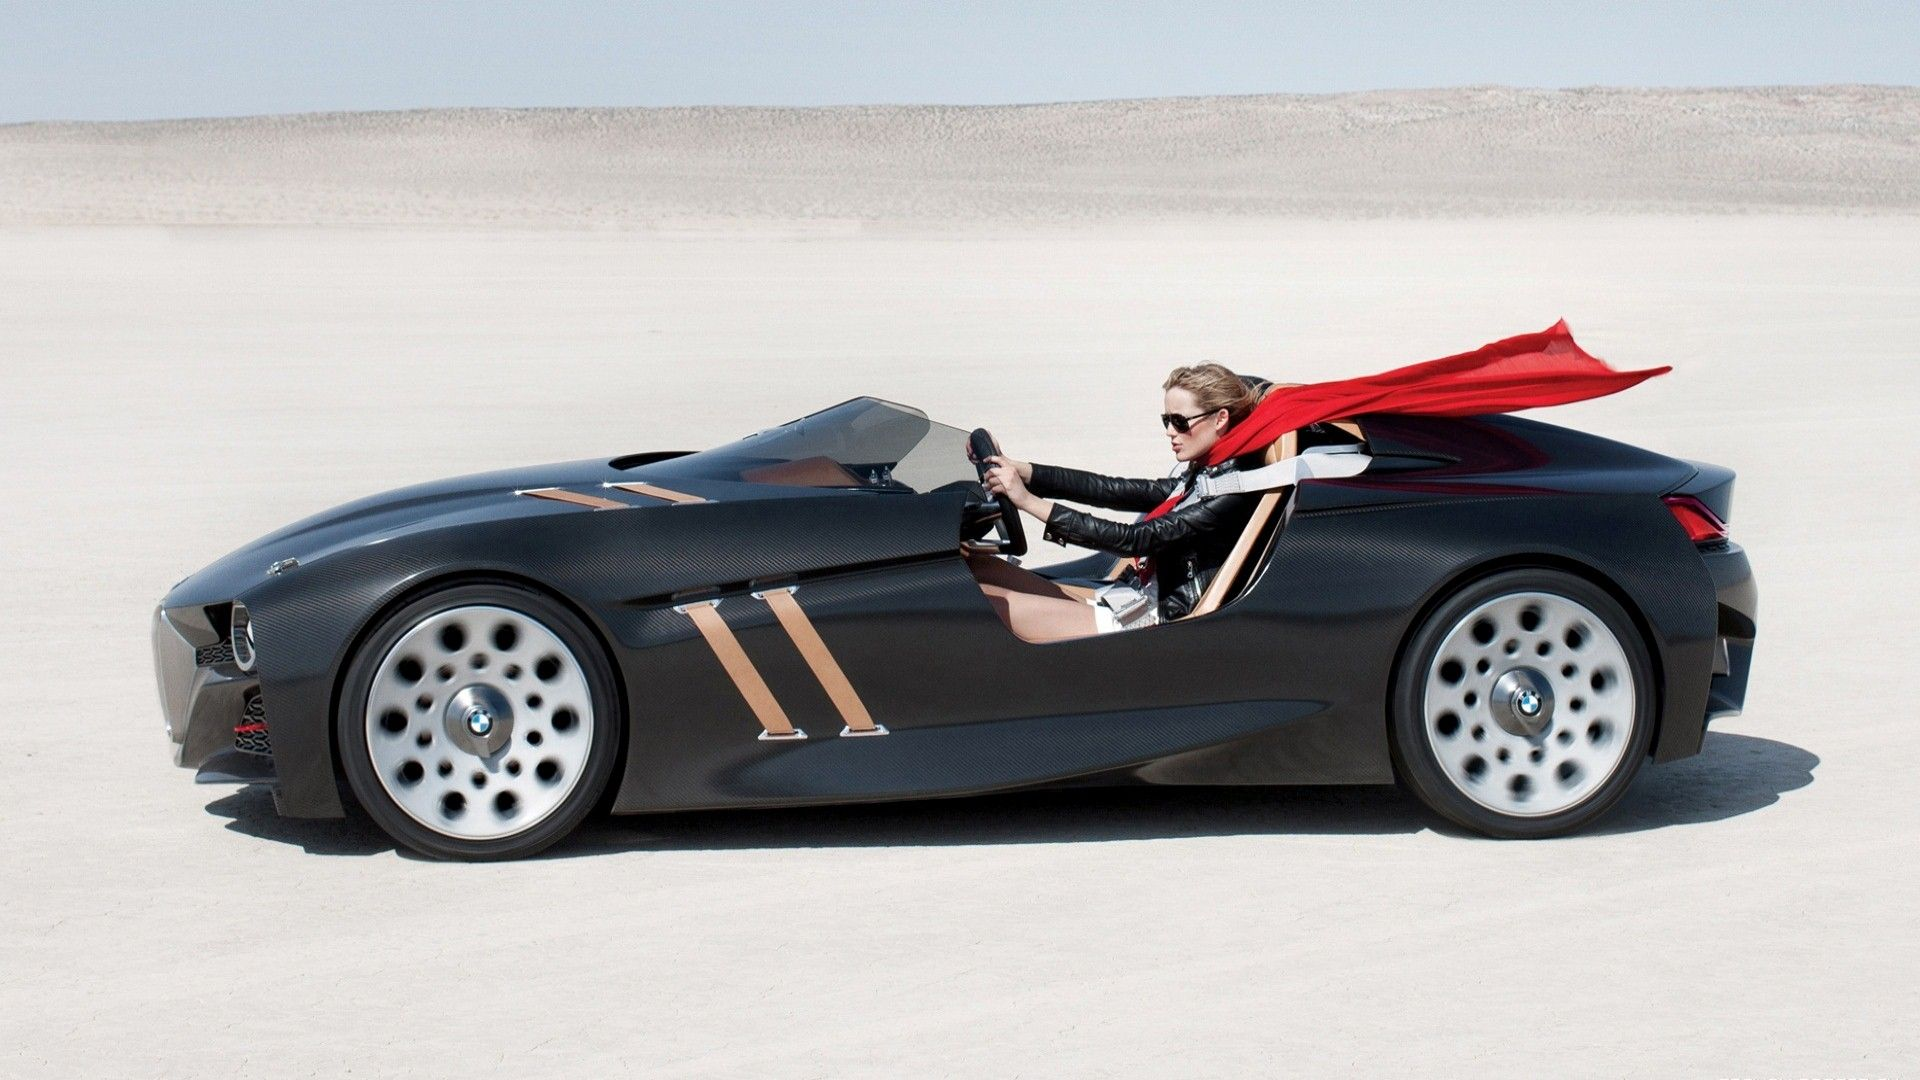 Bmw 328 Hommage Price Cars Wallpapers Bmw 328 Bmw Concept Car Bmw Concept